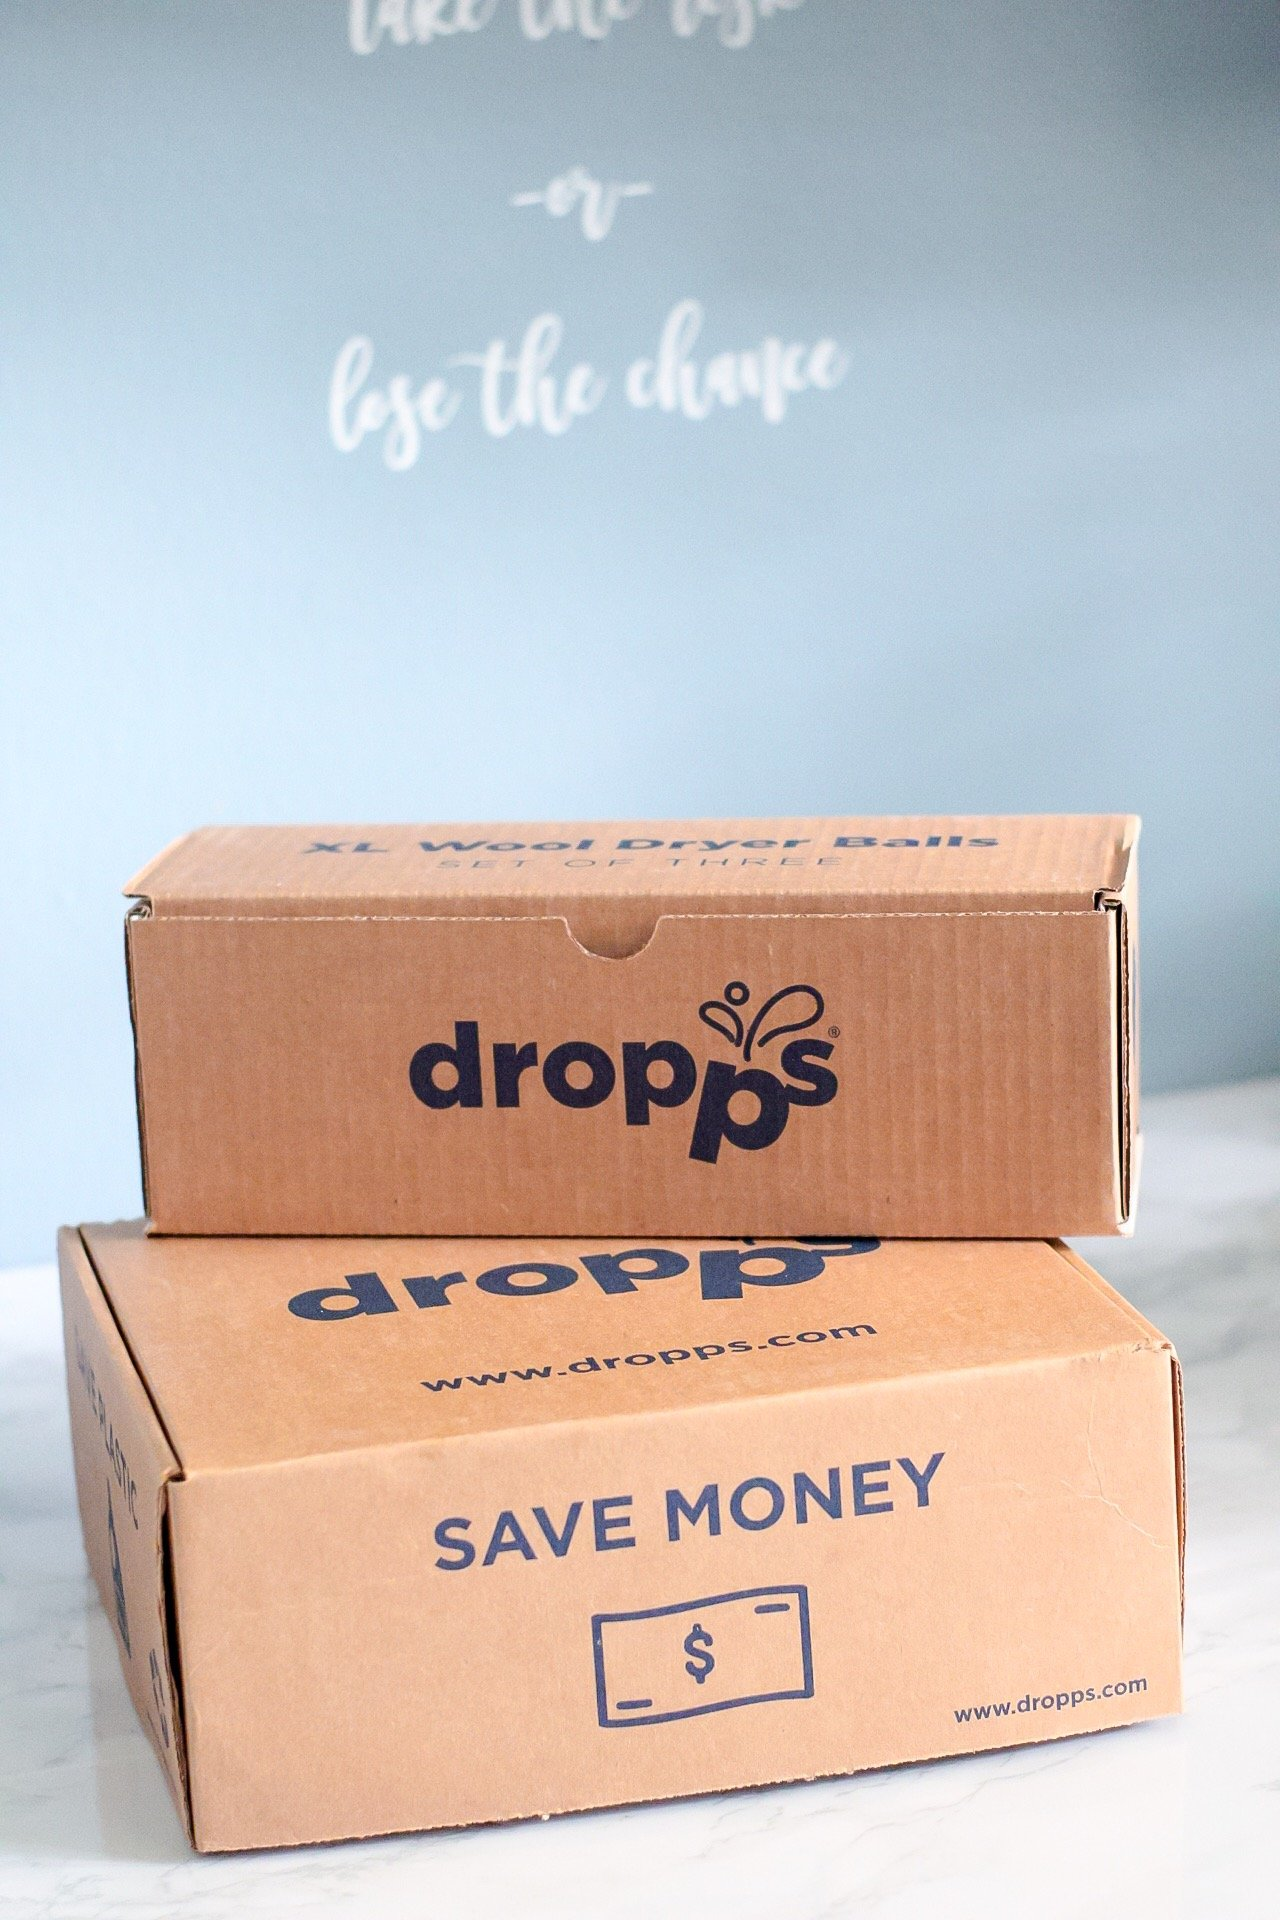 dropps boxes